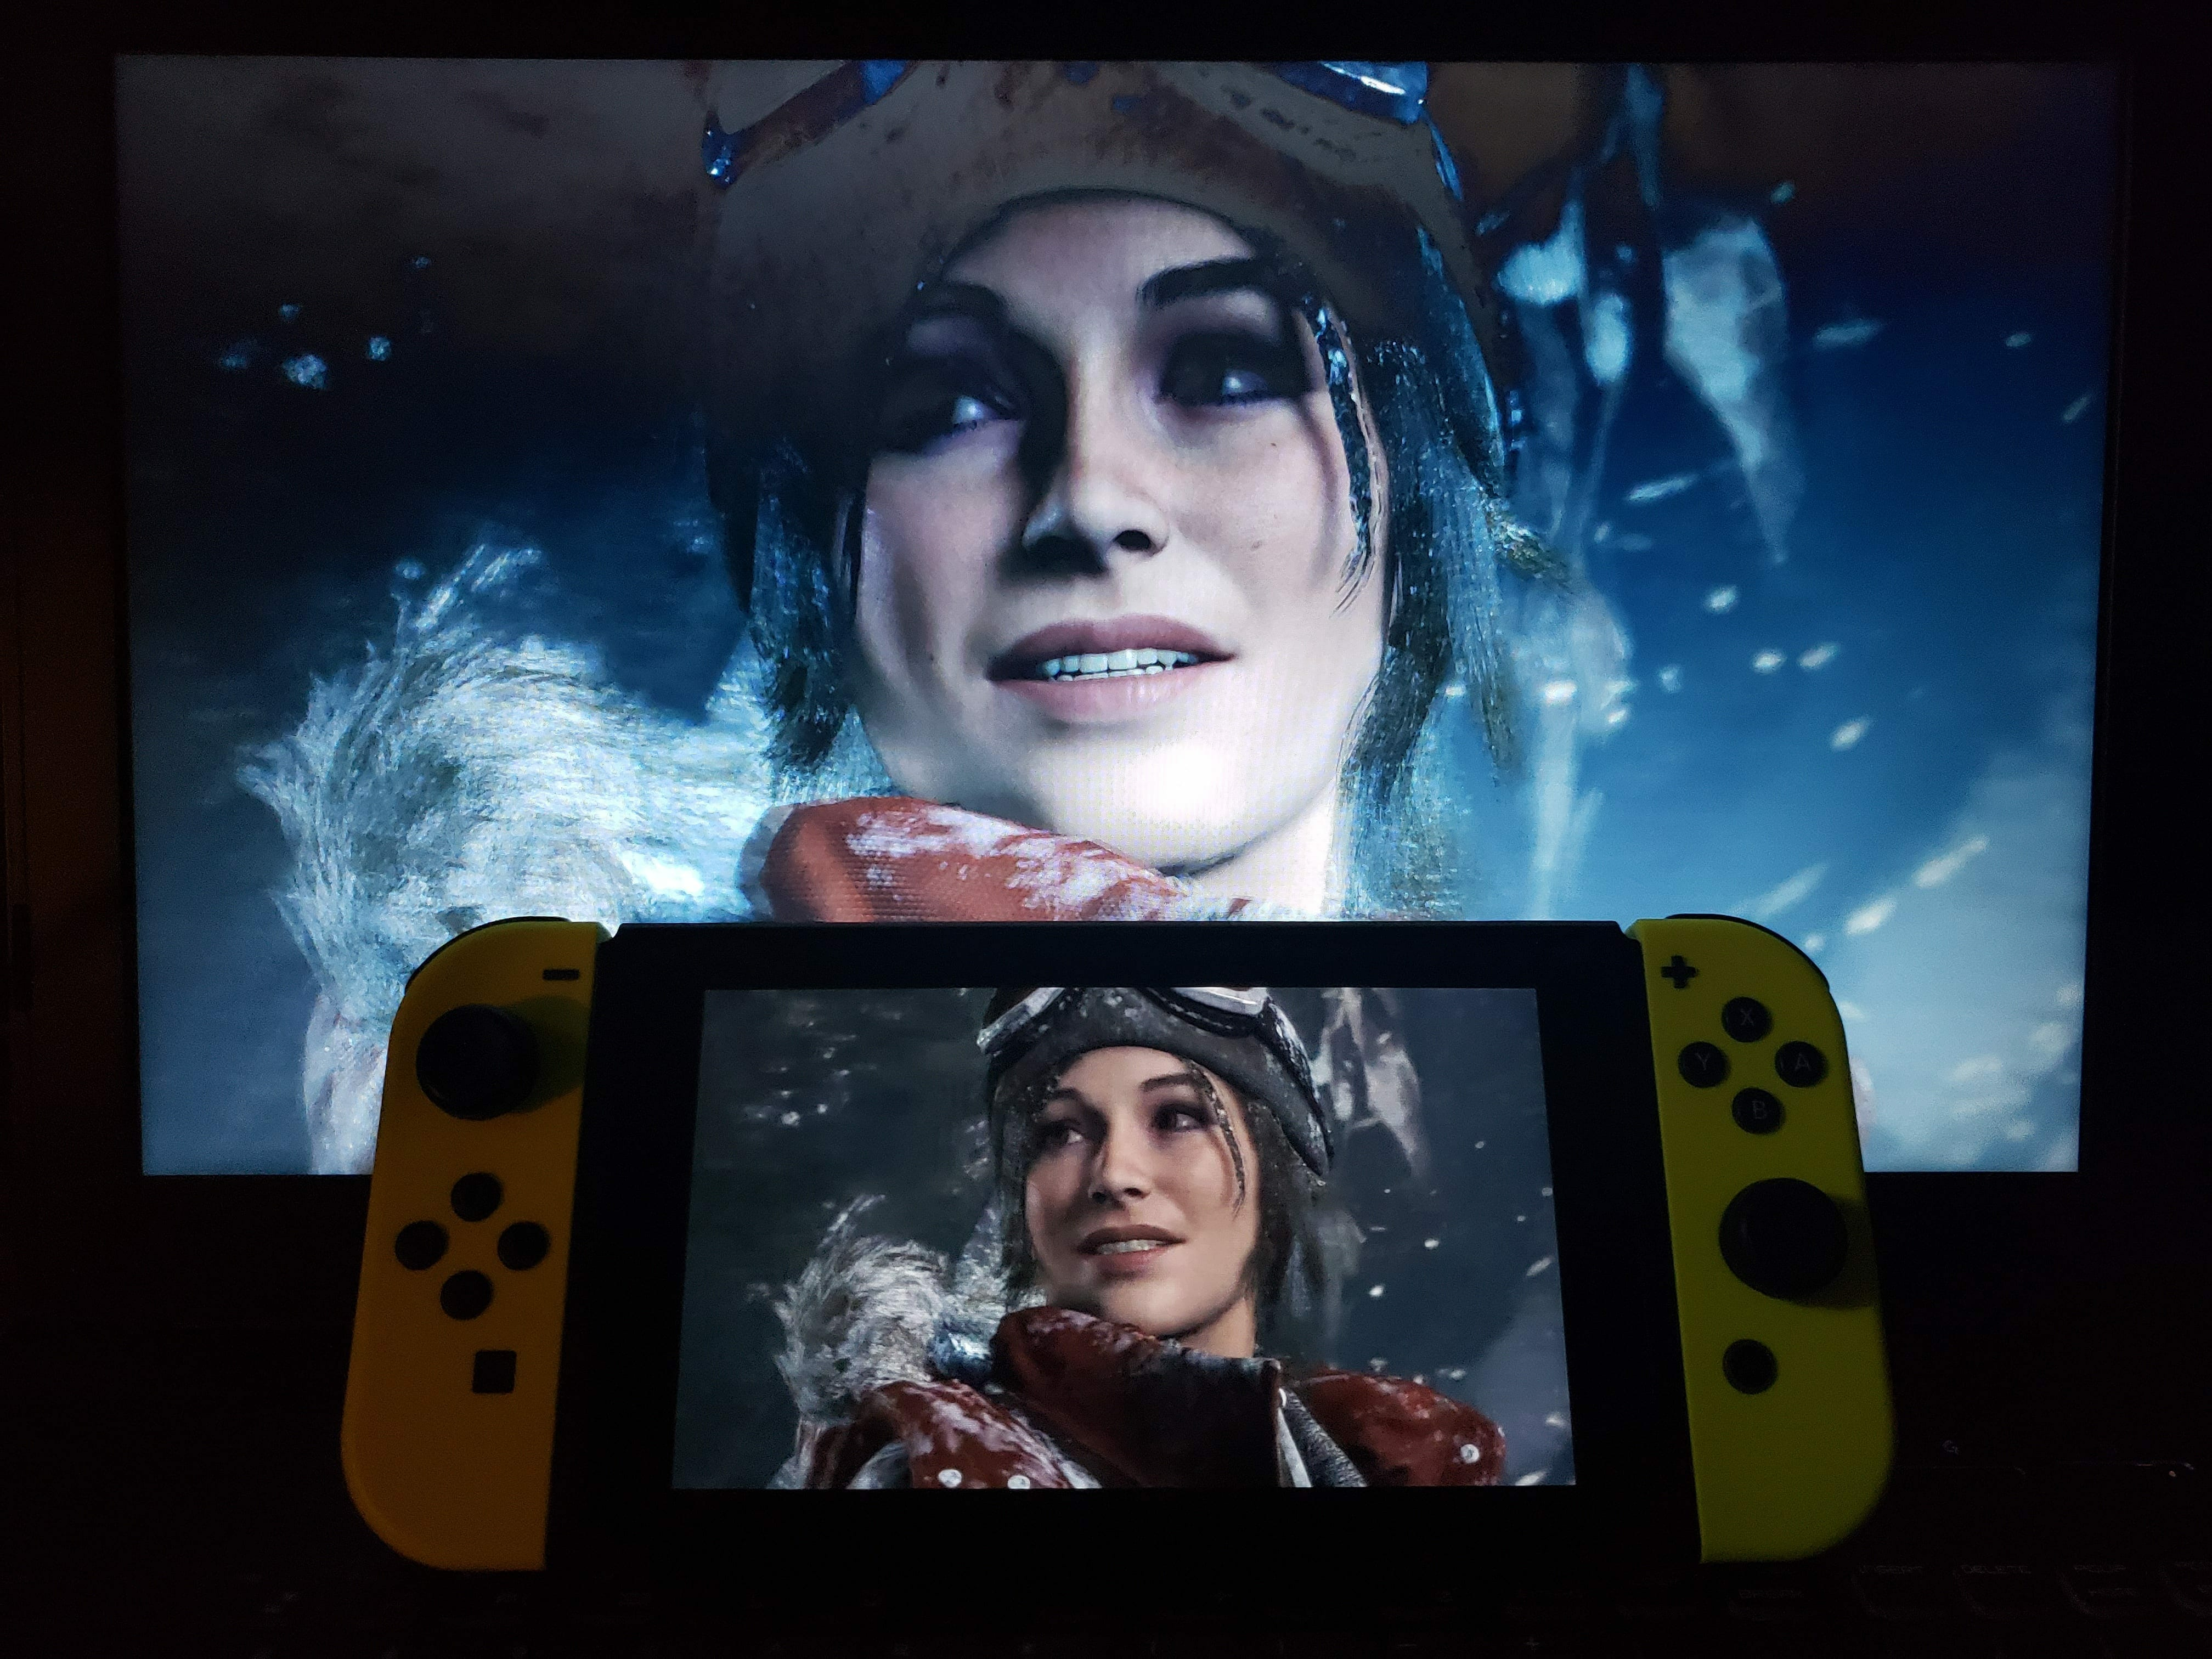 Streaming PC Games to Nintendo Switch